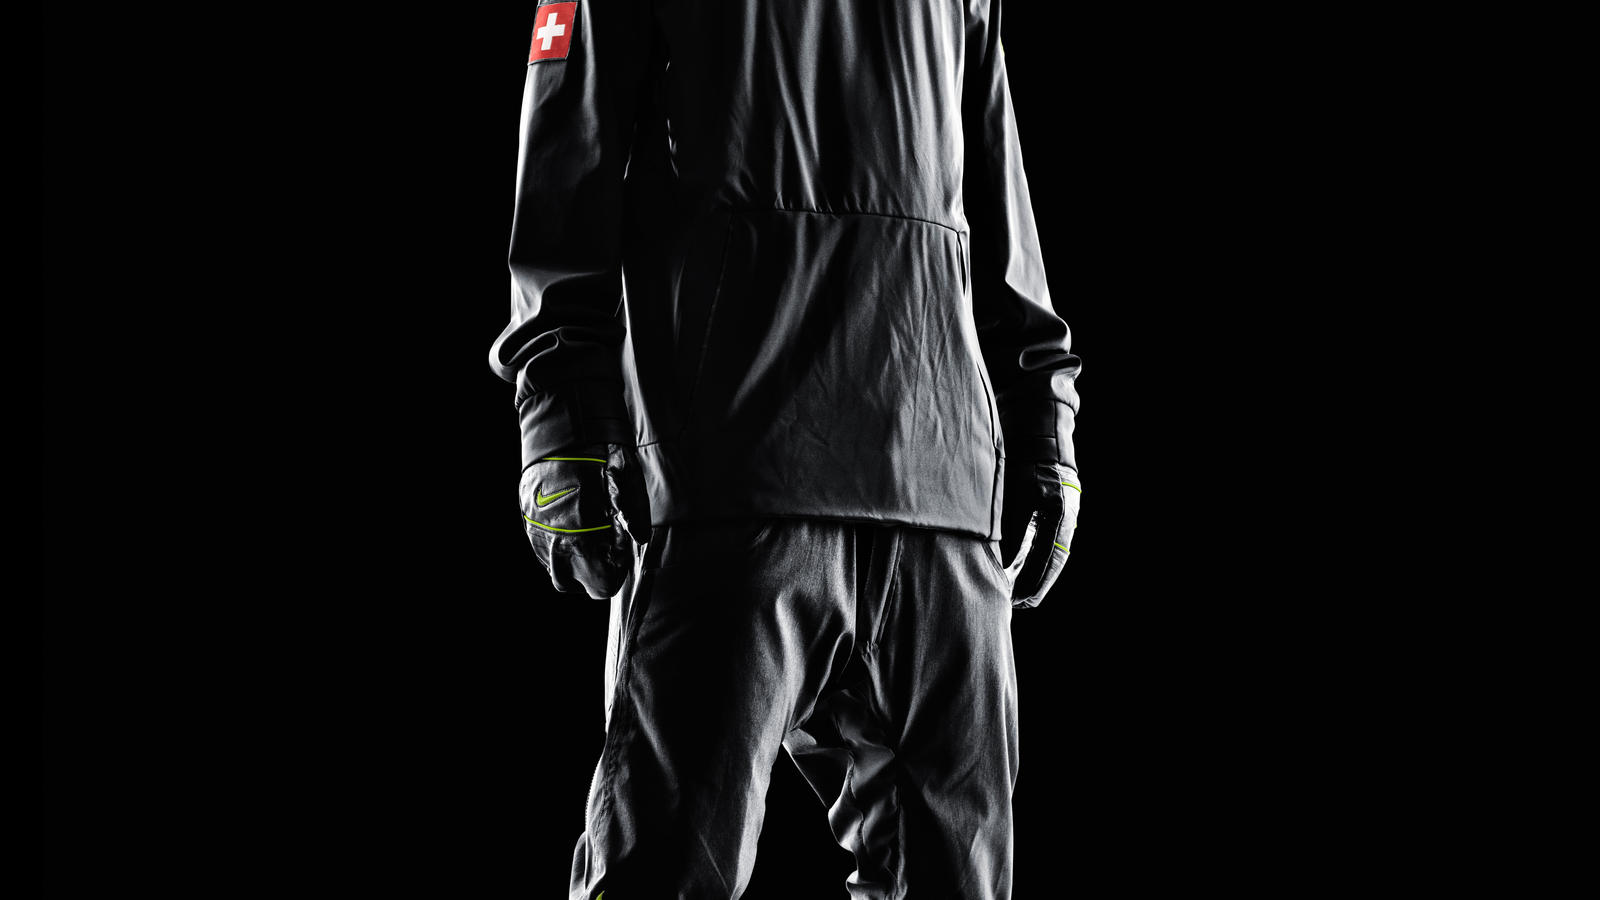 objetivo Permanente Extracción  Nike SB Winter Competition Kit: Innovative Snowboard and Ski Uniforms  Unveiled - Nike News